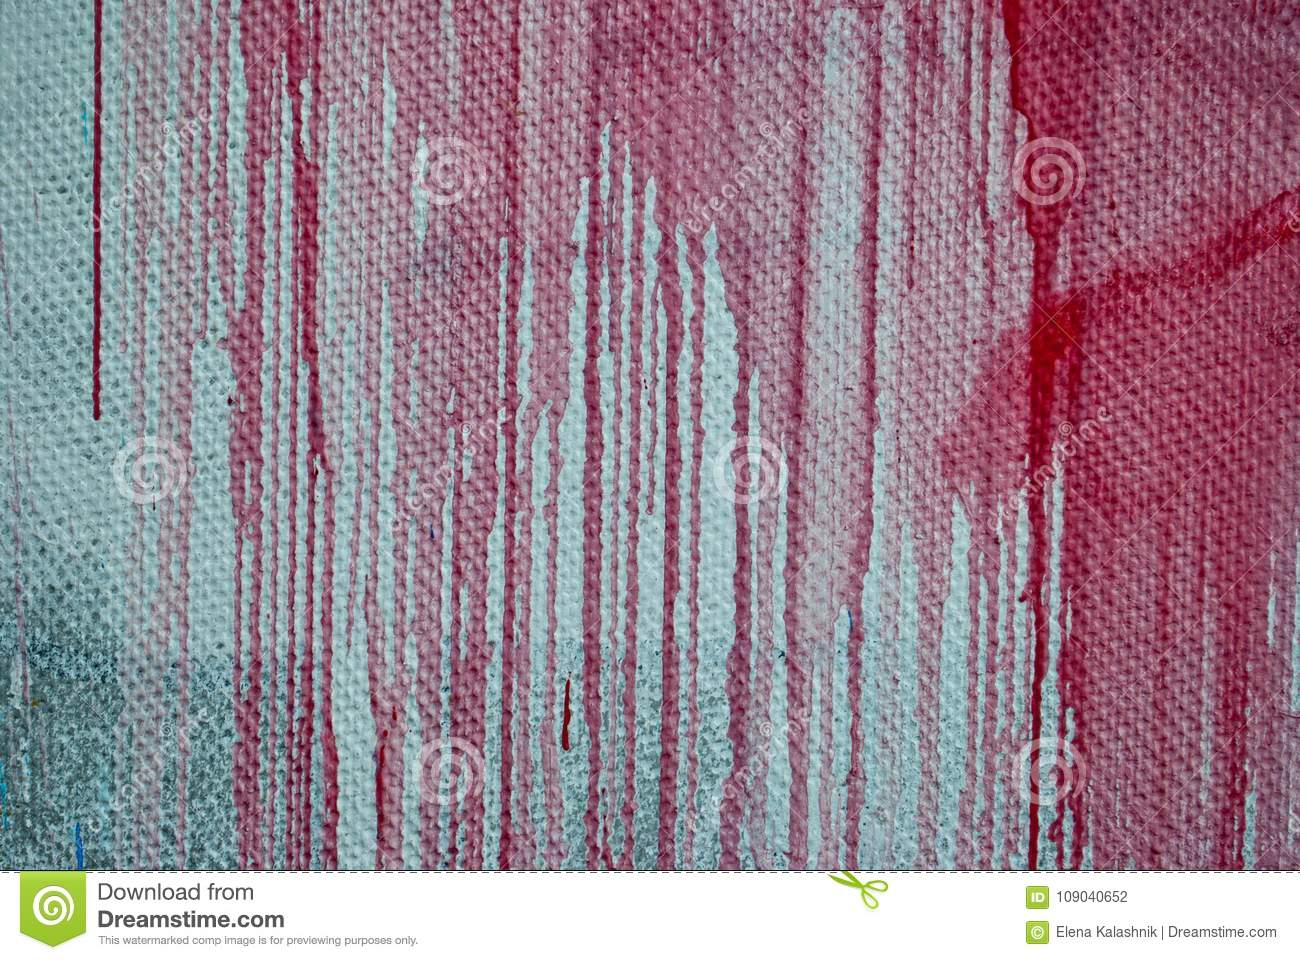 Concrete Wall Stains Of Red Paint Graffiti Stock Photo